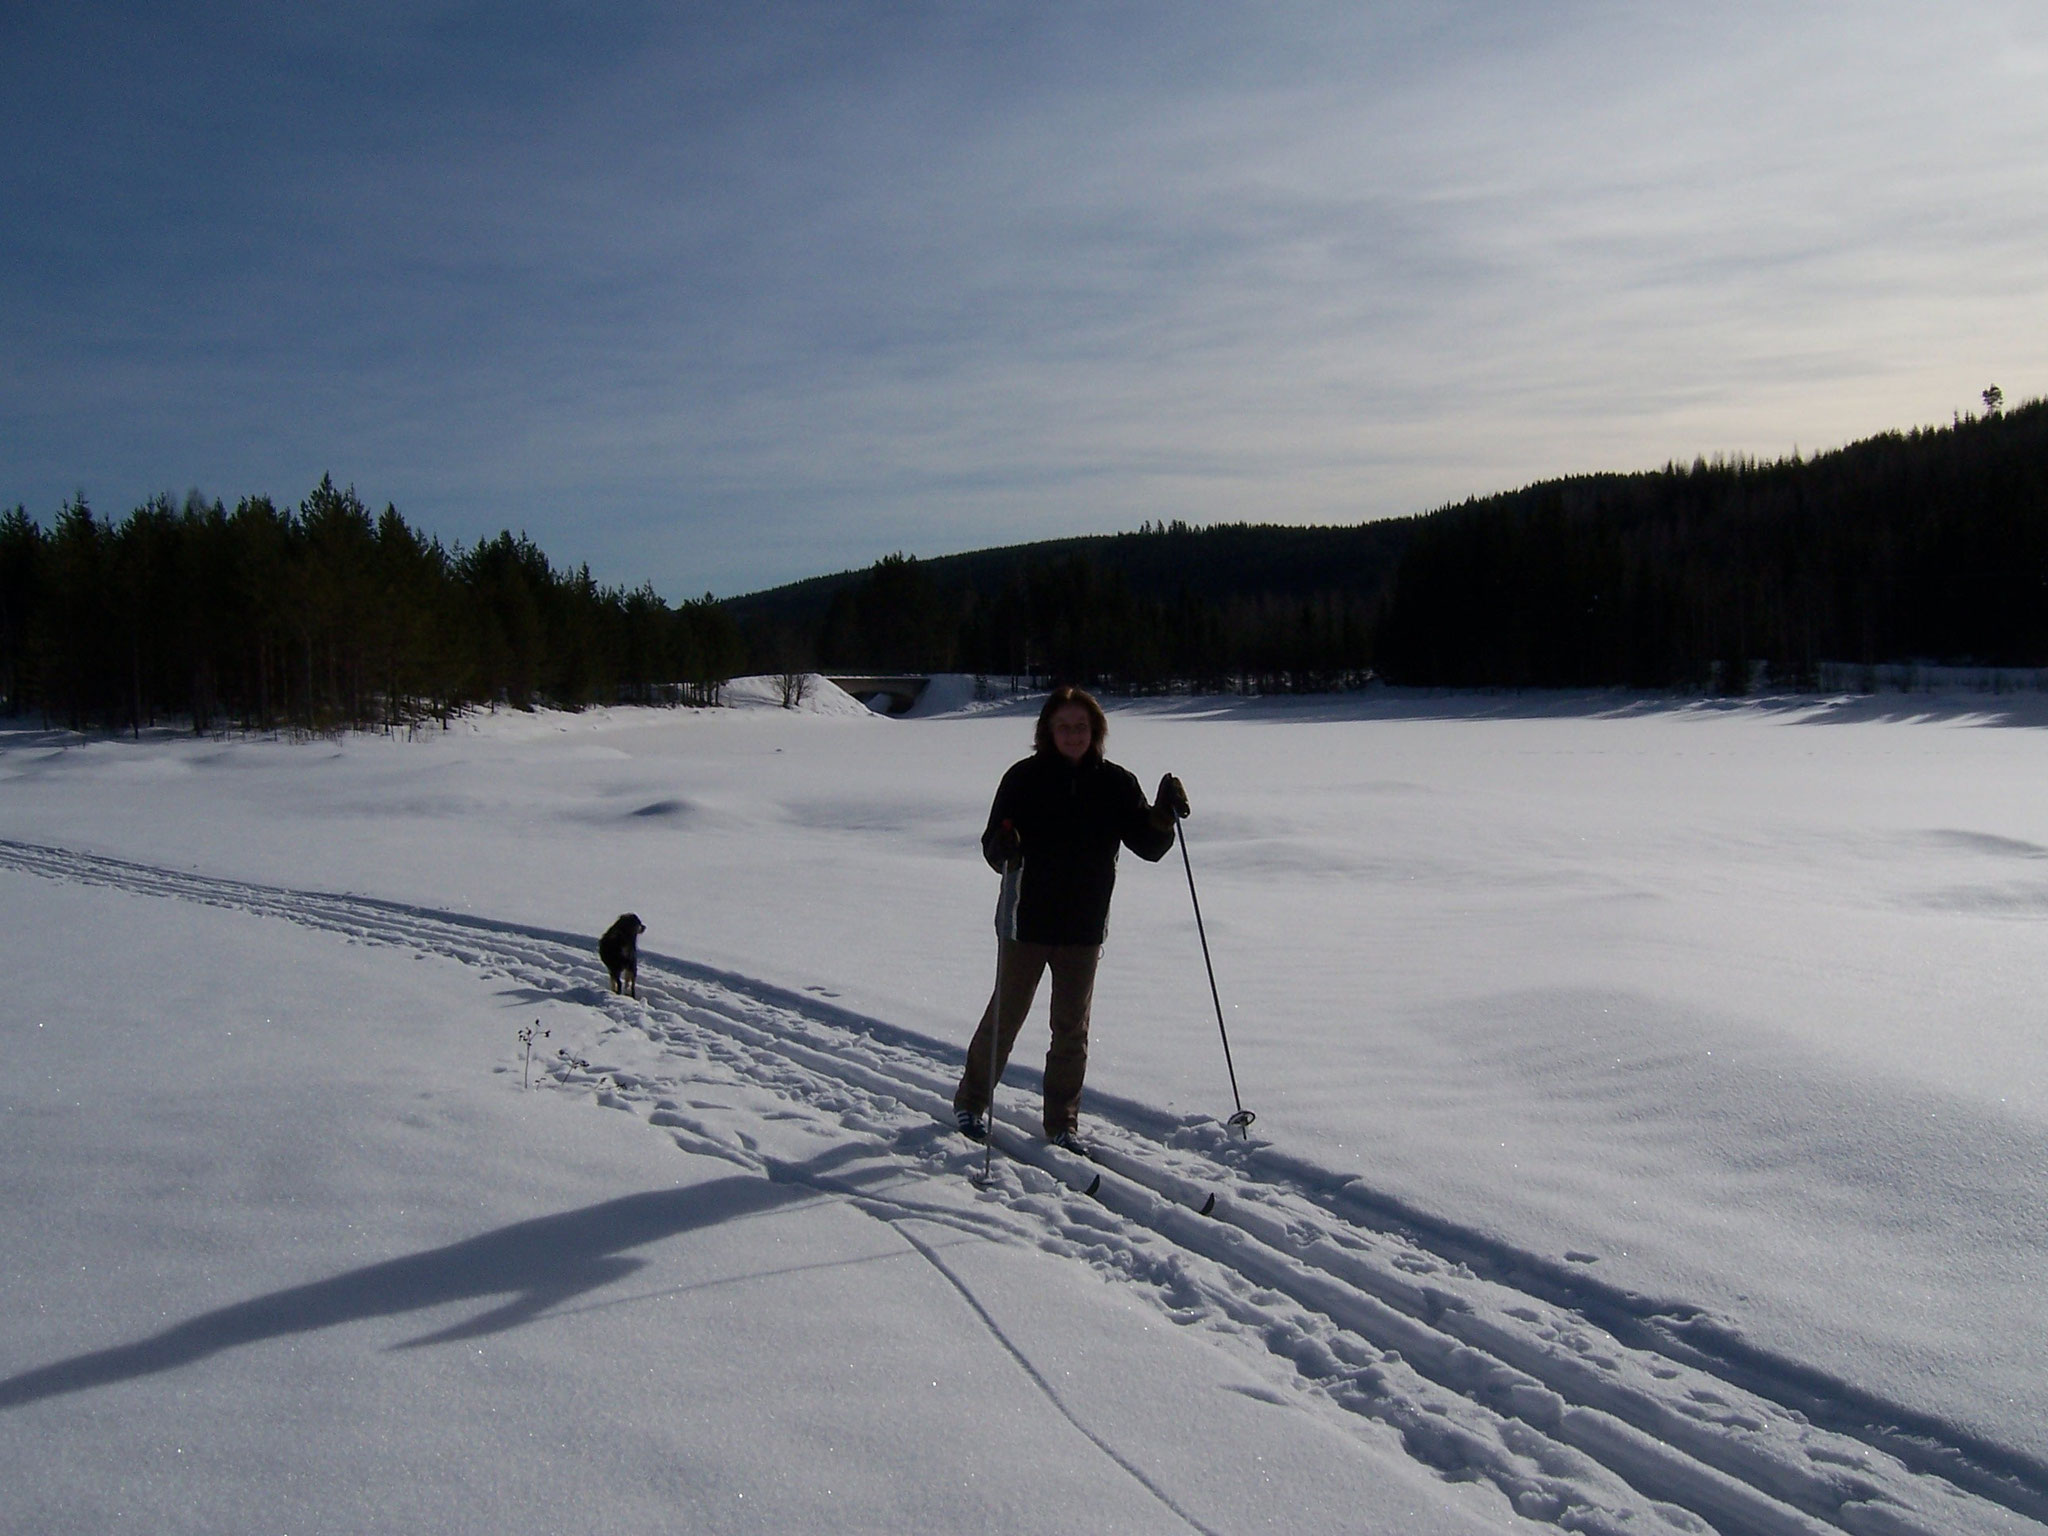 Cross country skiing on the frozen Rottnan